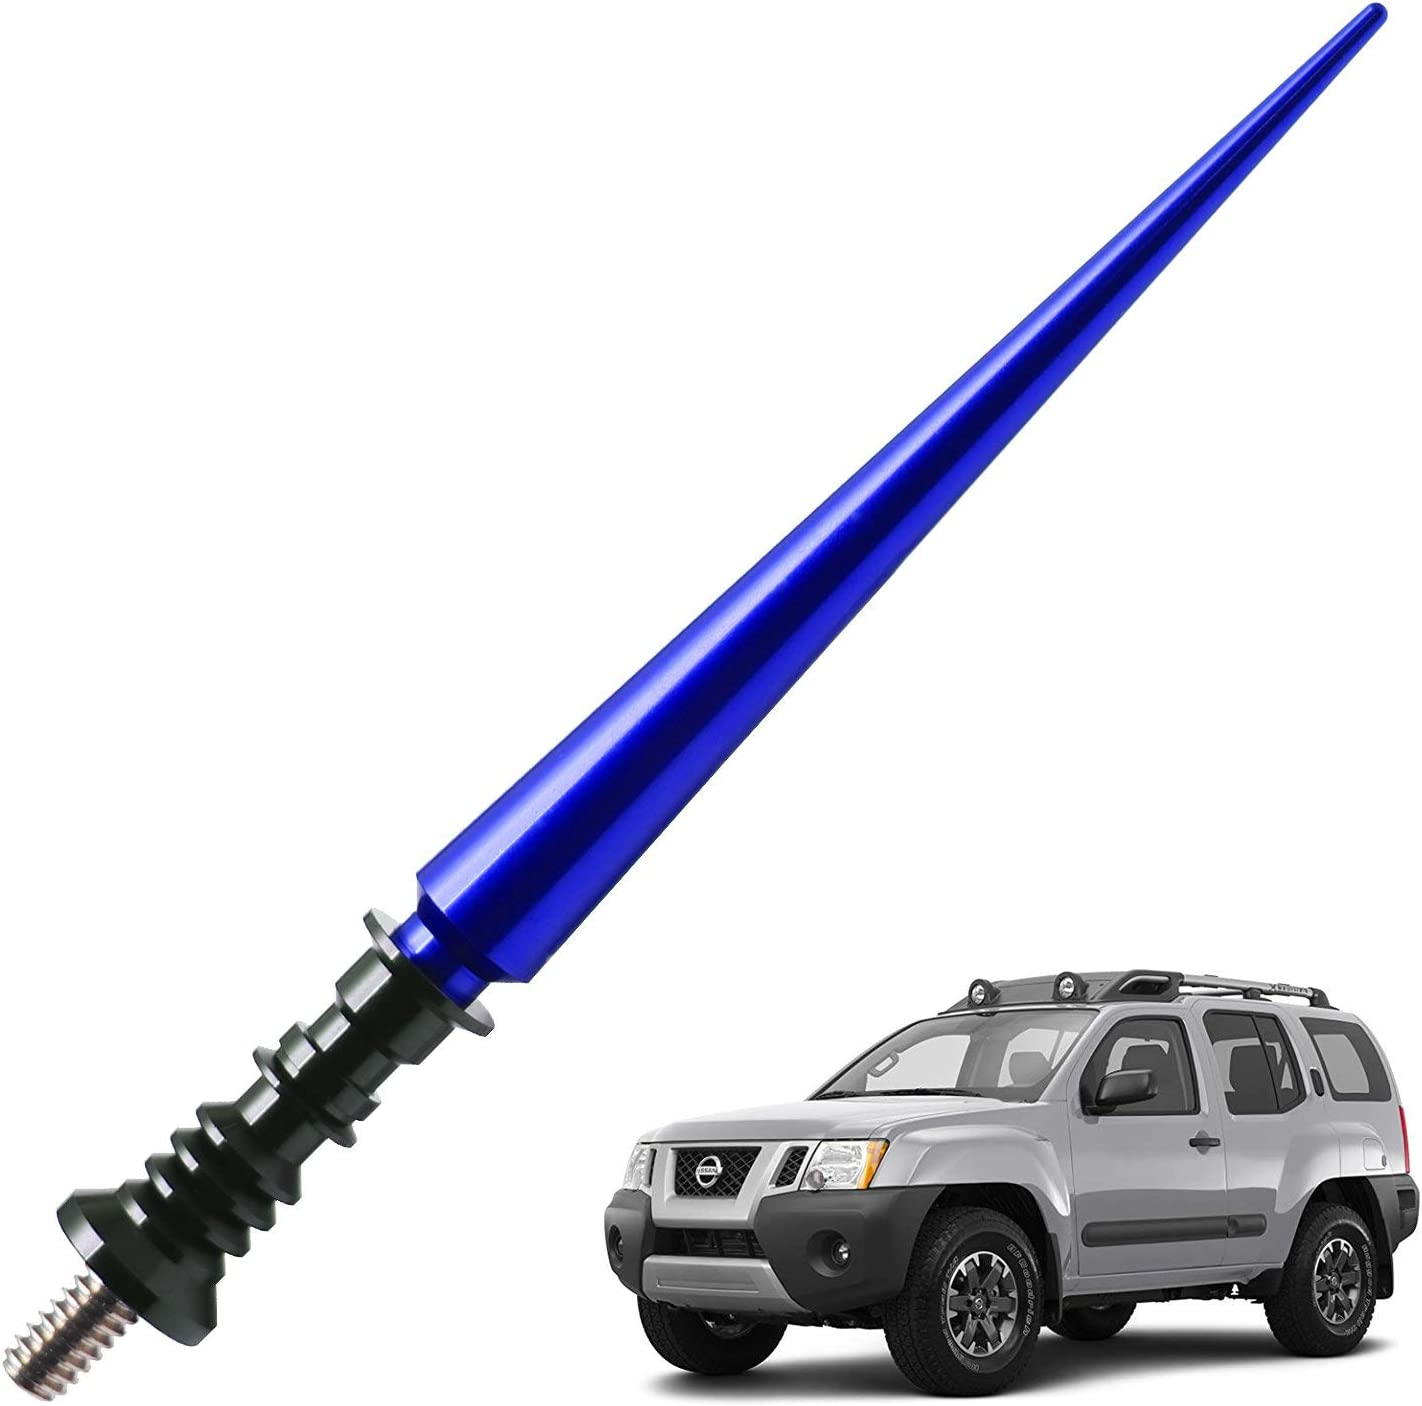 5.25 inches-Blue JAPower Replacement Antenna Compatible with Dodge Nitro 2007-2010